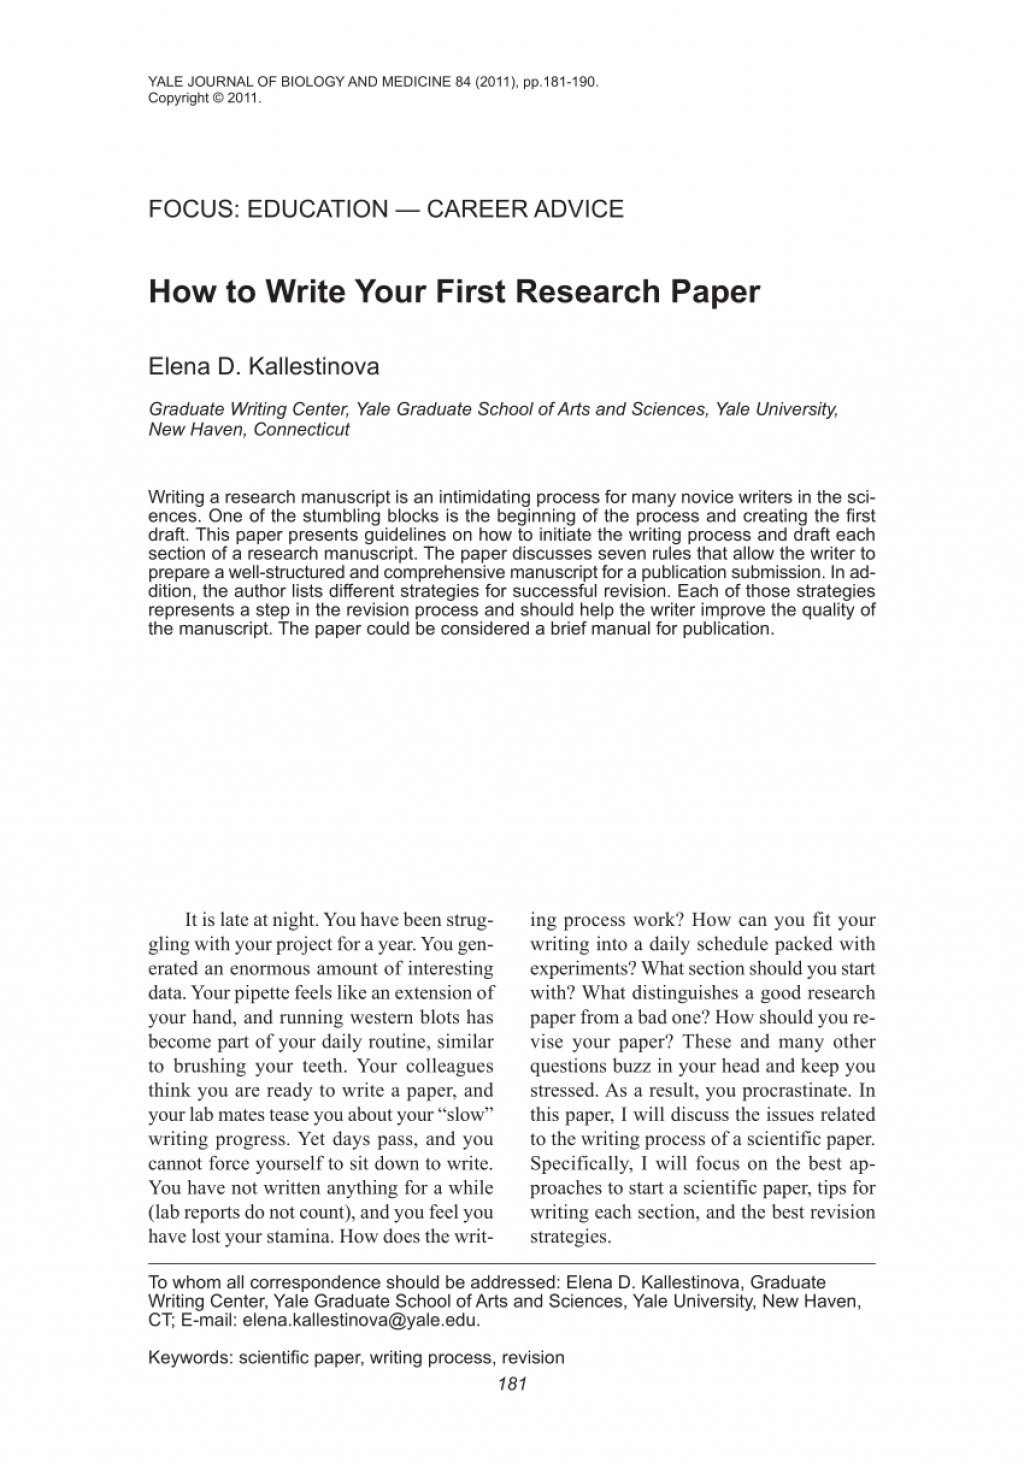 003 How To Write Research Paper Frightening A In Apa Format Sample Outline Owl Purdue Good Abstract Large